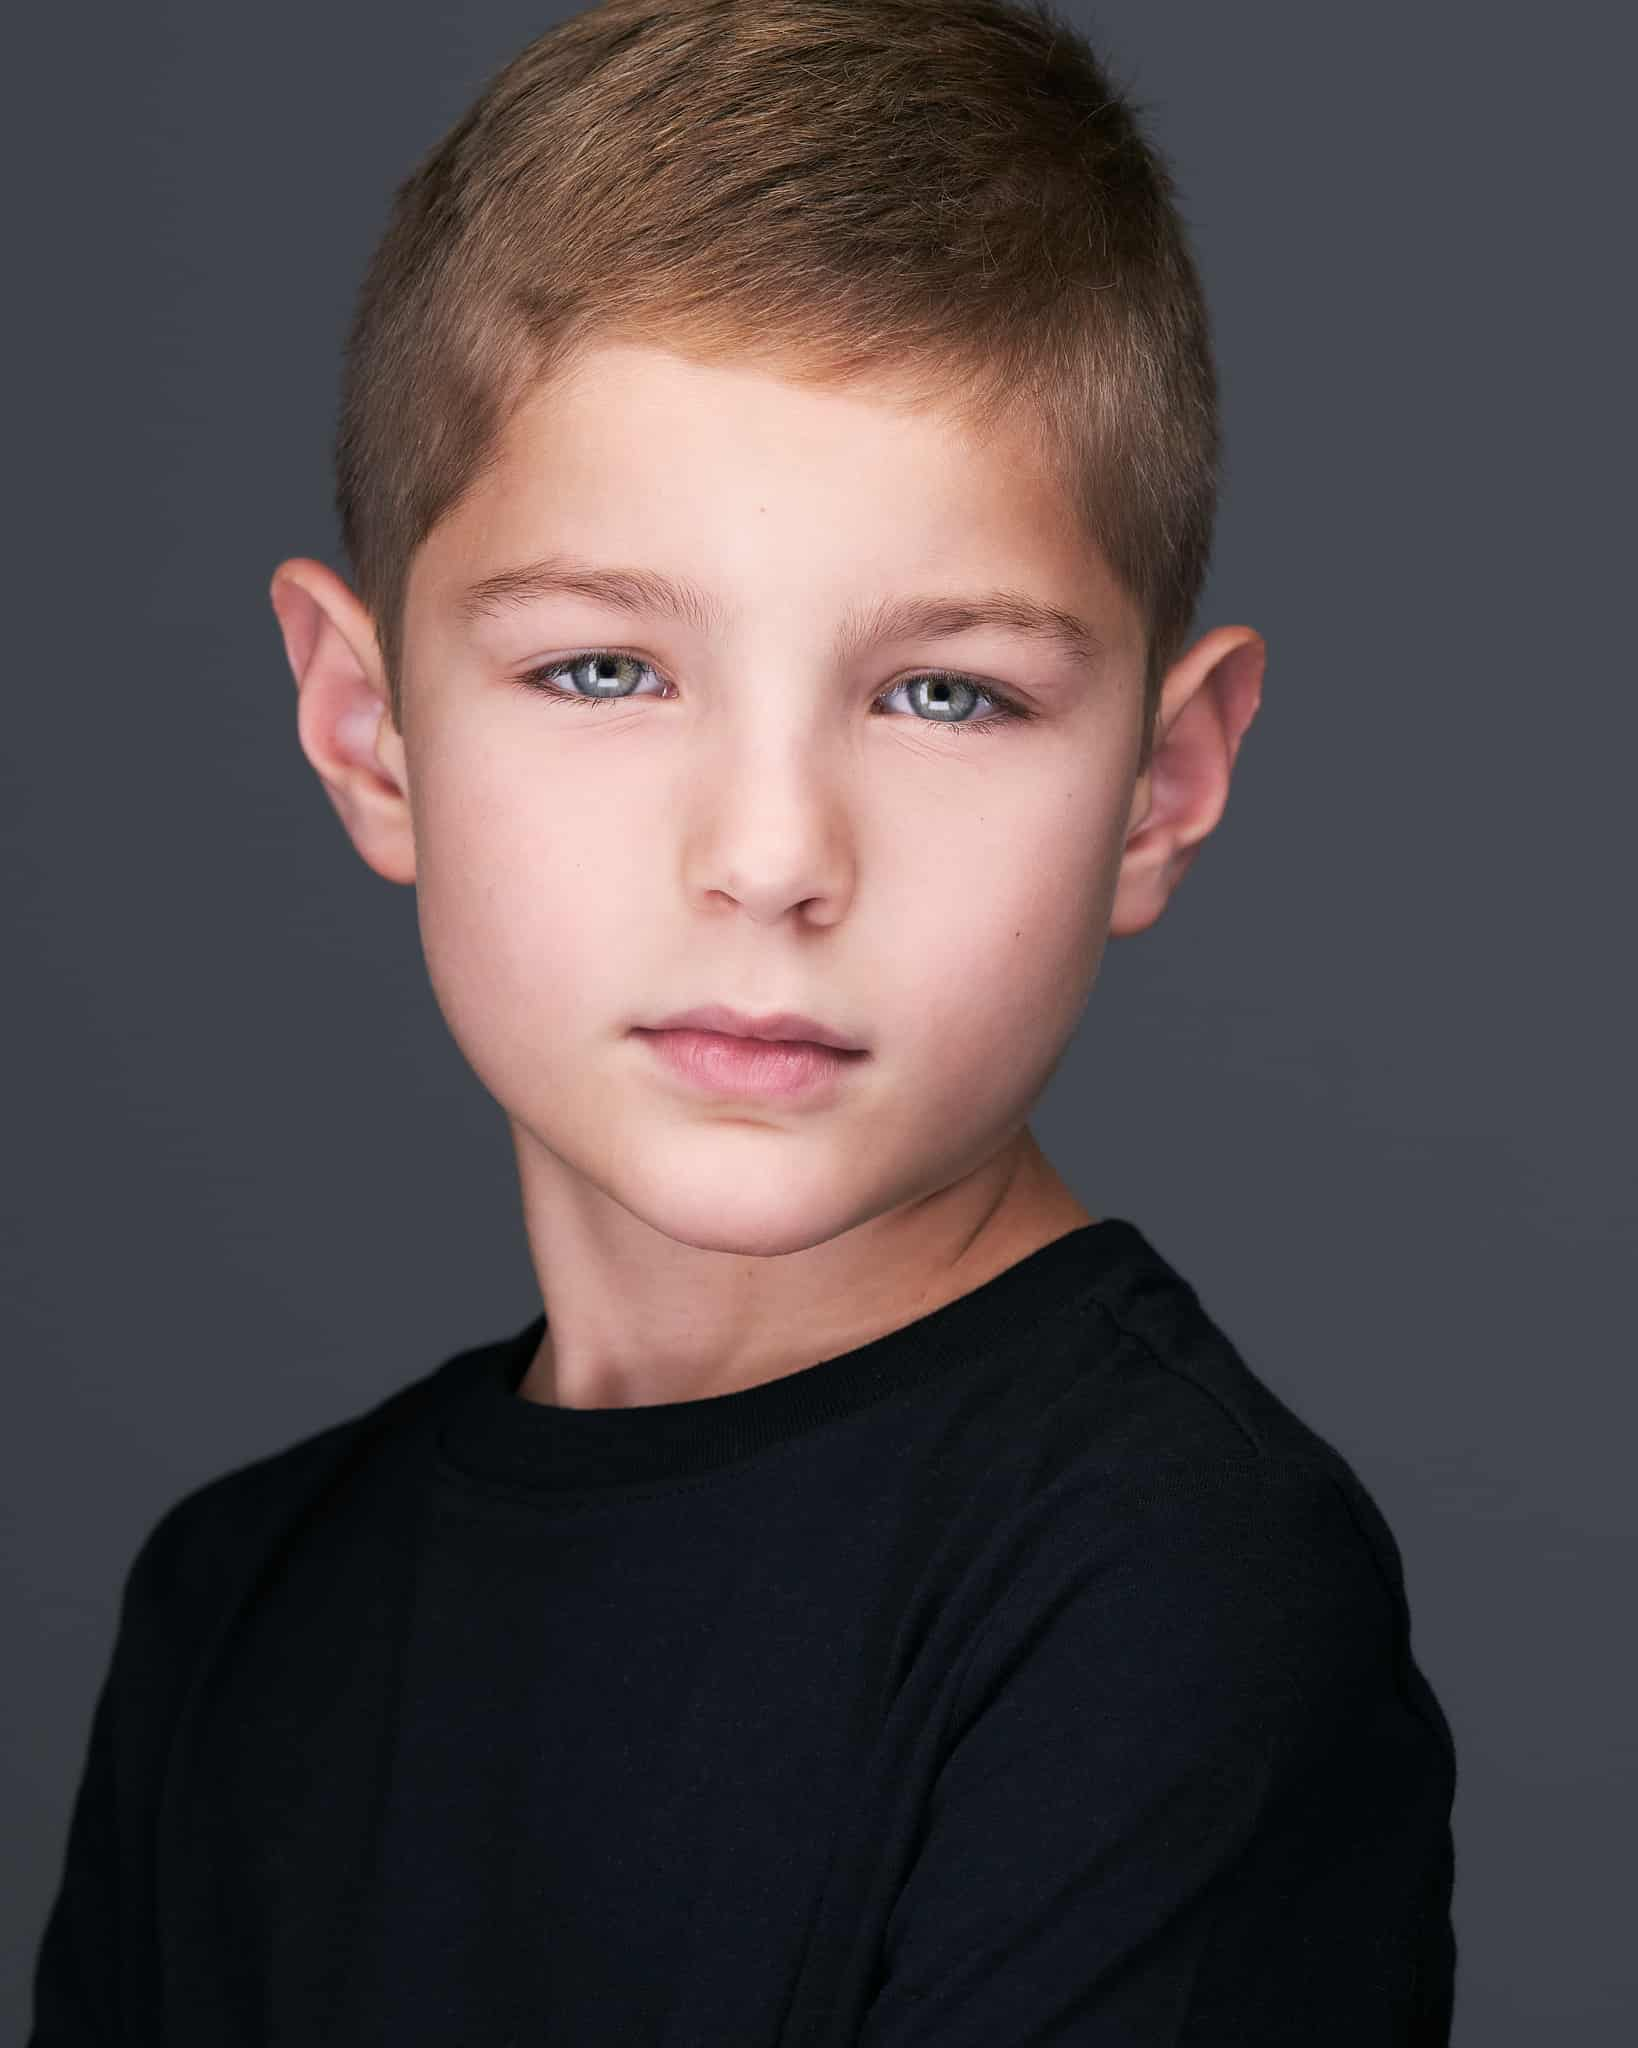 Youth Headshots for Actors and Models